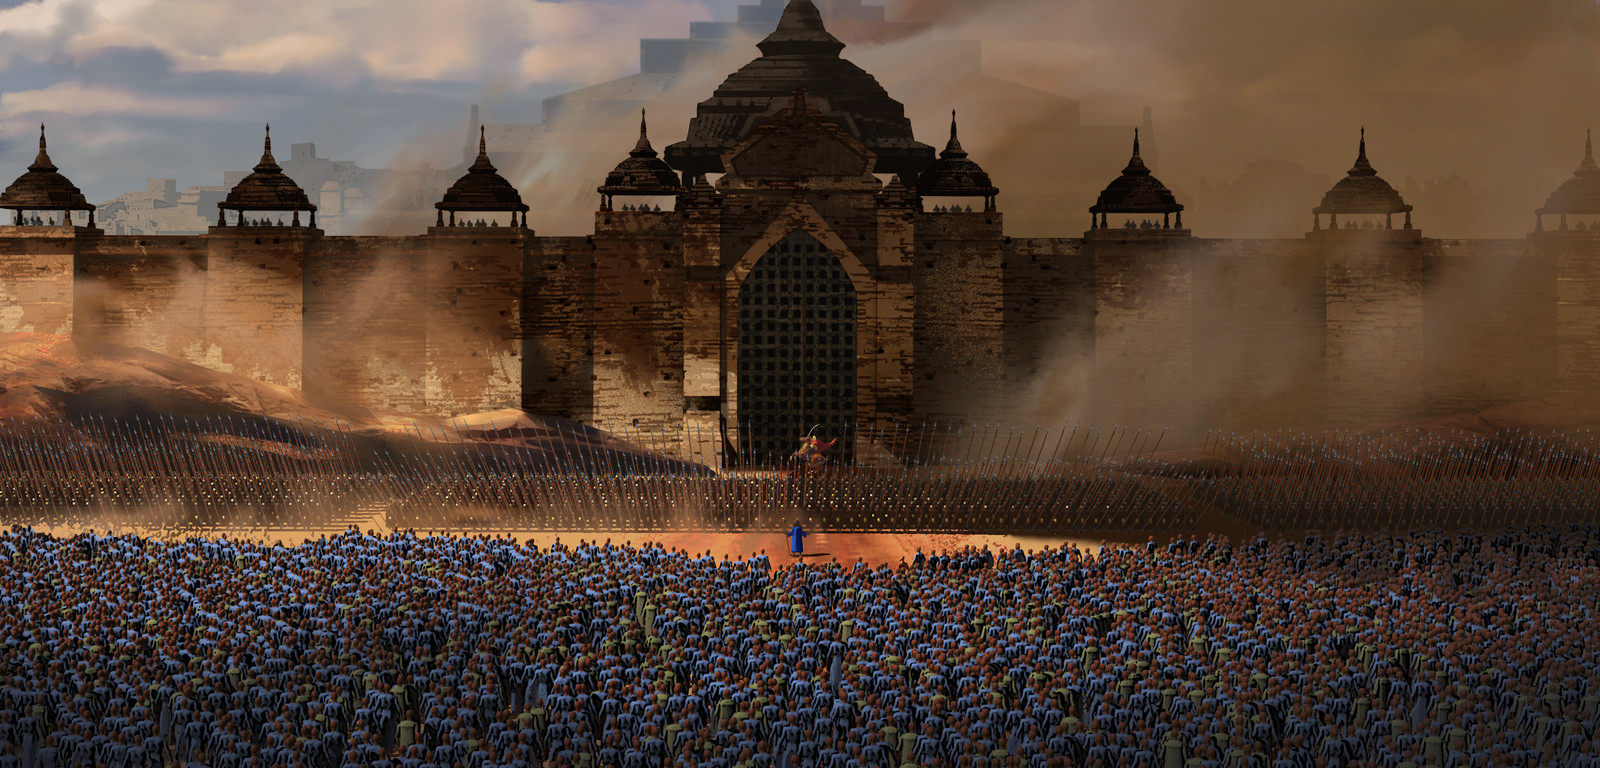 A confrontation between outcast citizens and the guards of the city.